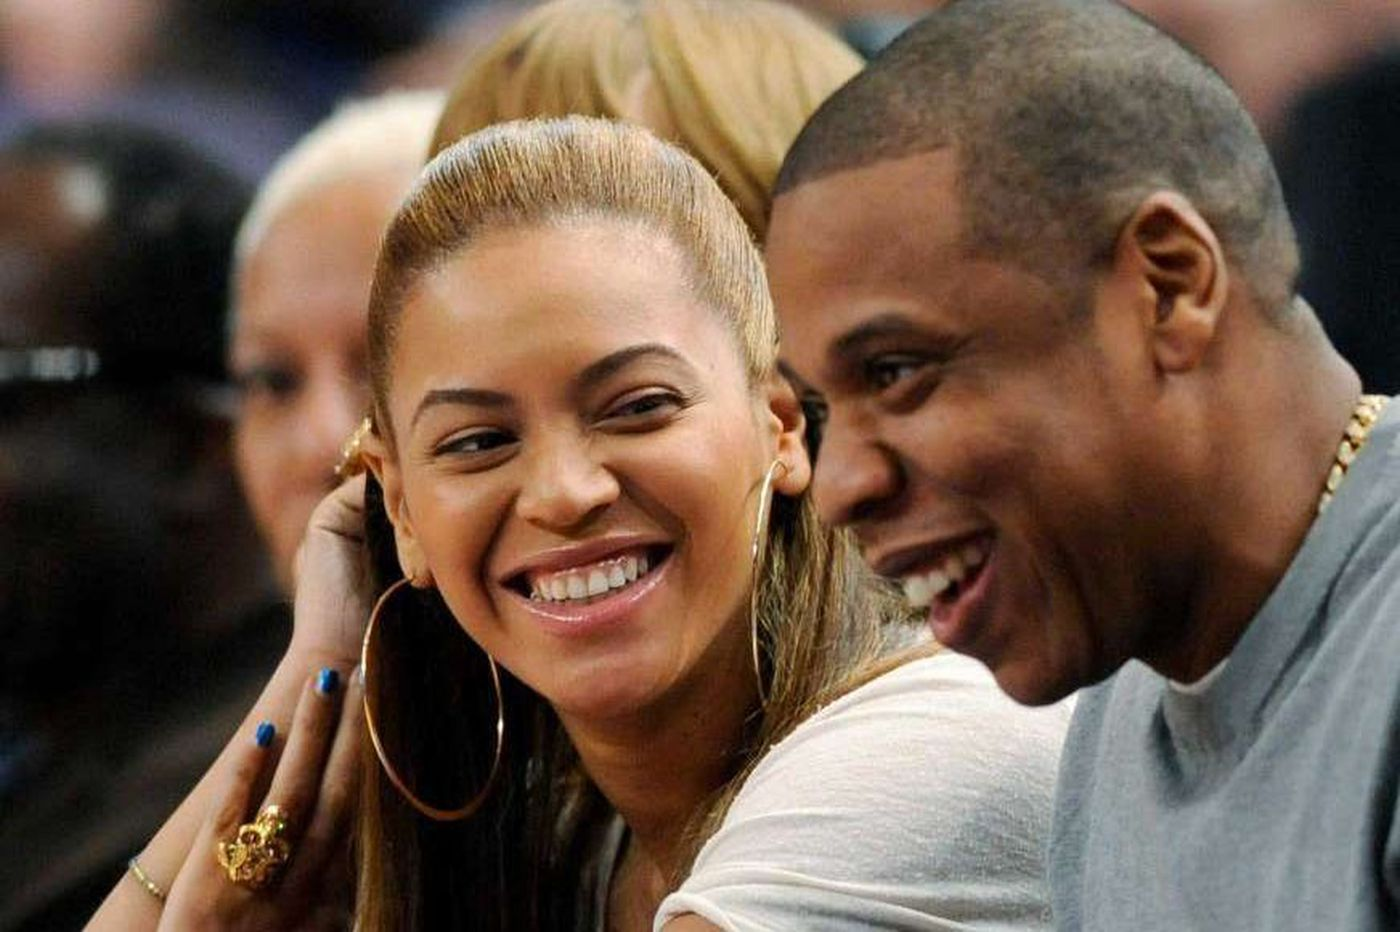 Beyoncé and Jay-Z to bring 'On the Run II' tour to Lincoln Financial Field this summer